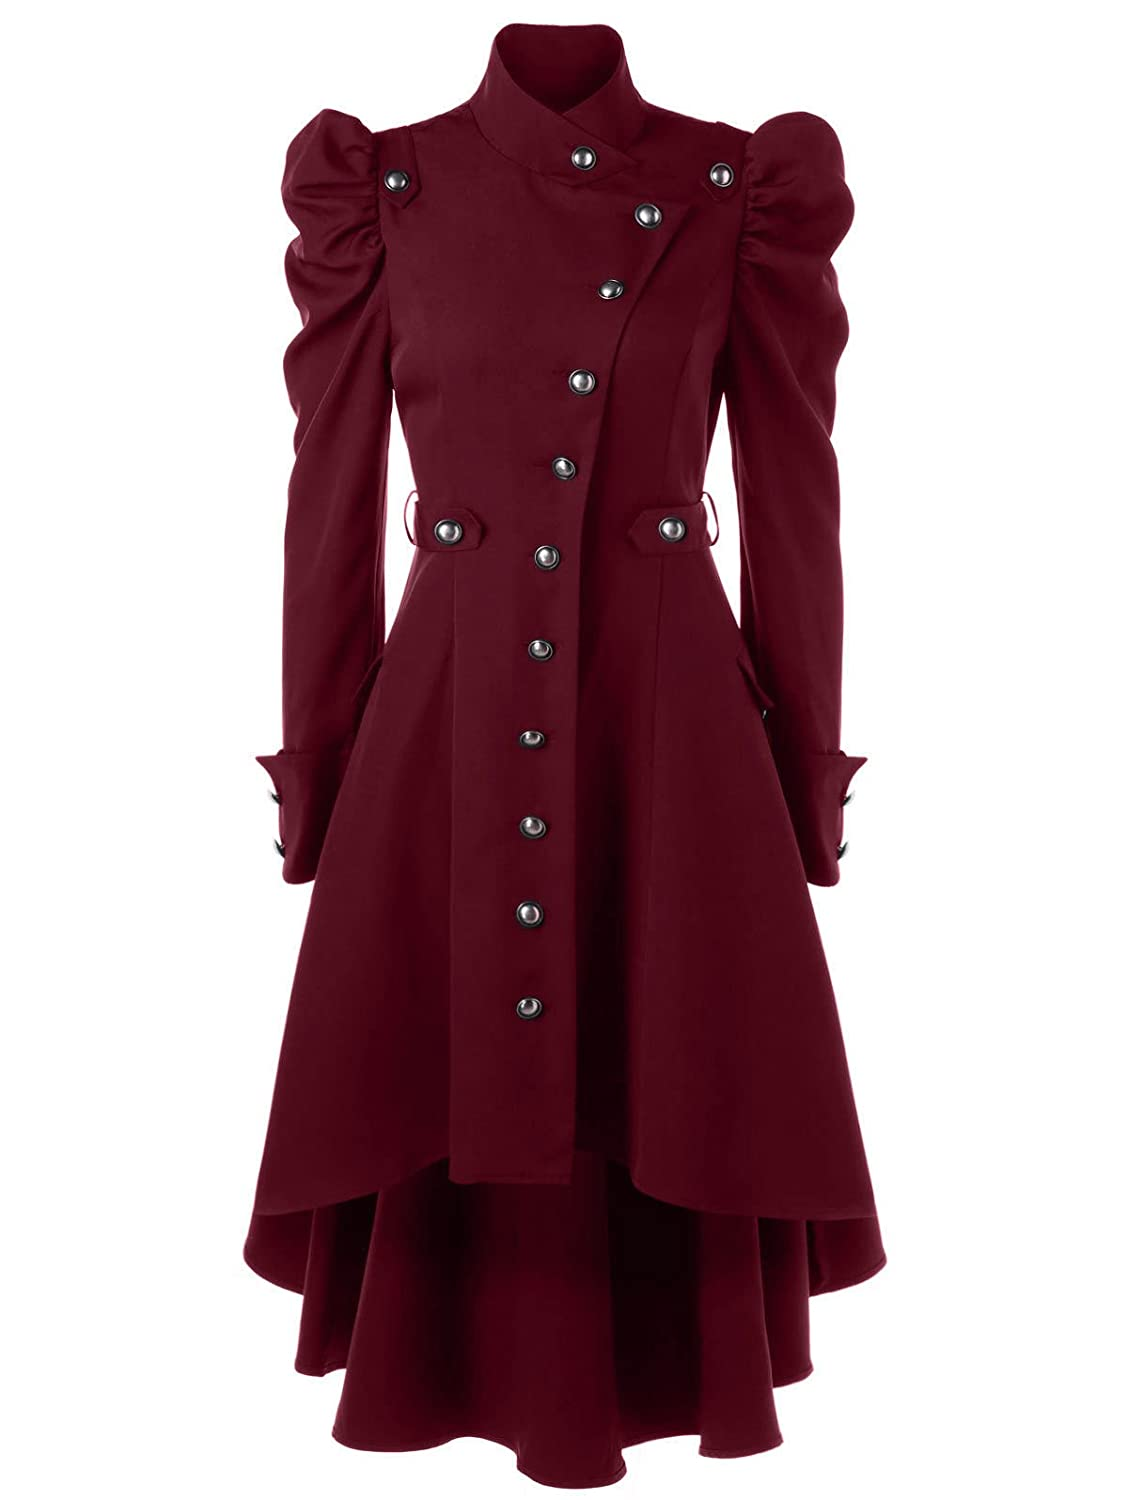 Beebeauty Gothic Vintage Womens Steampunk Victorian Long Trench Coat Jacket